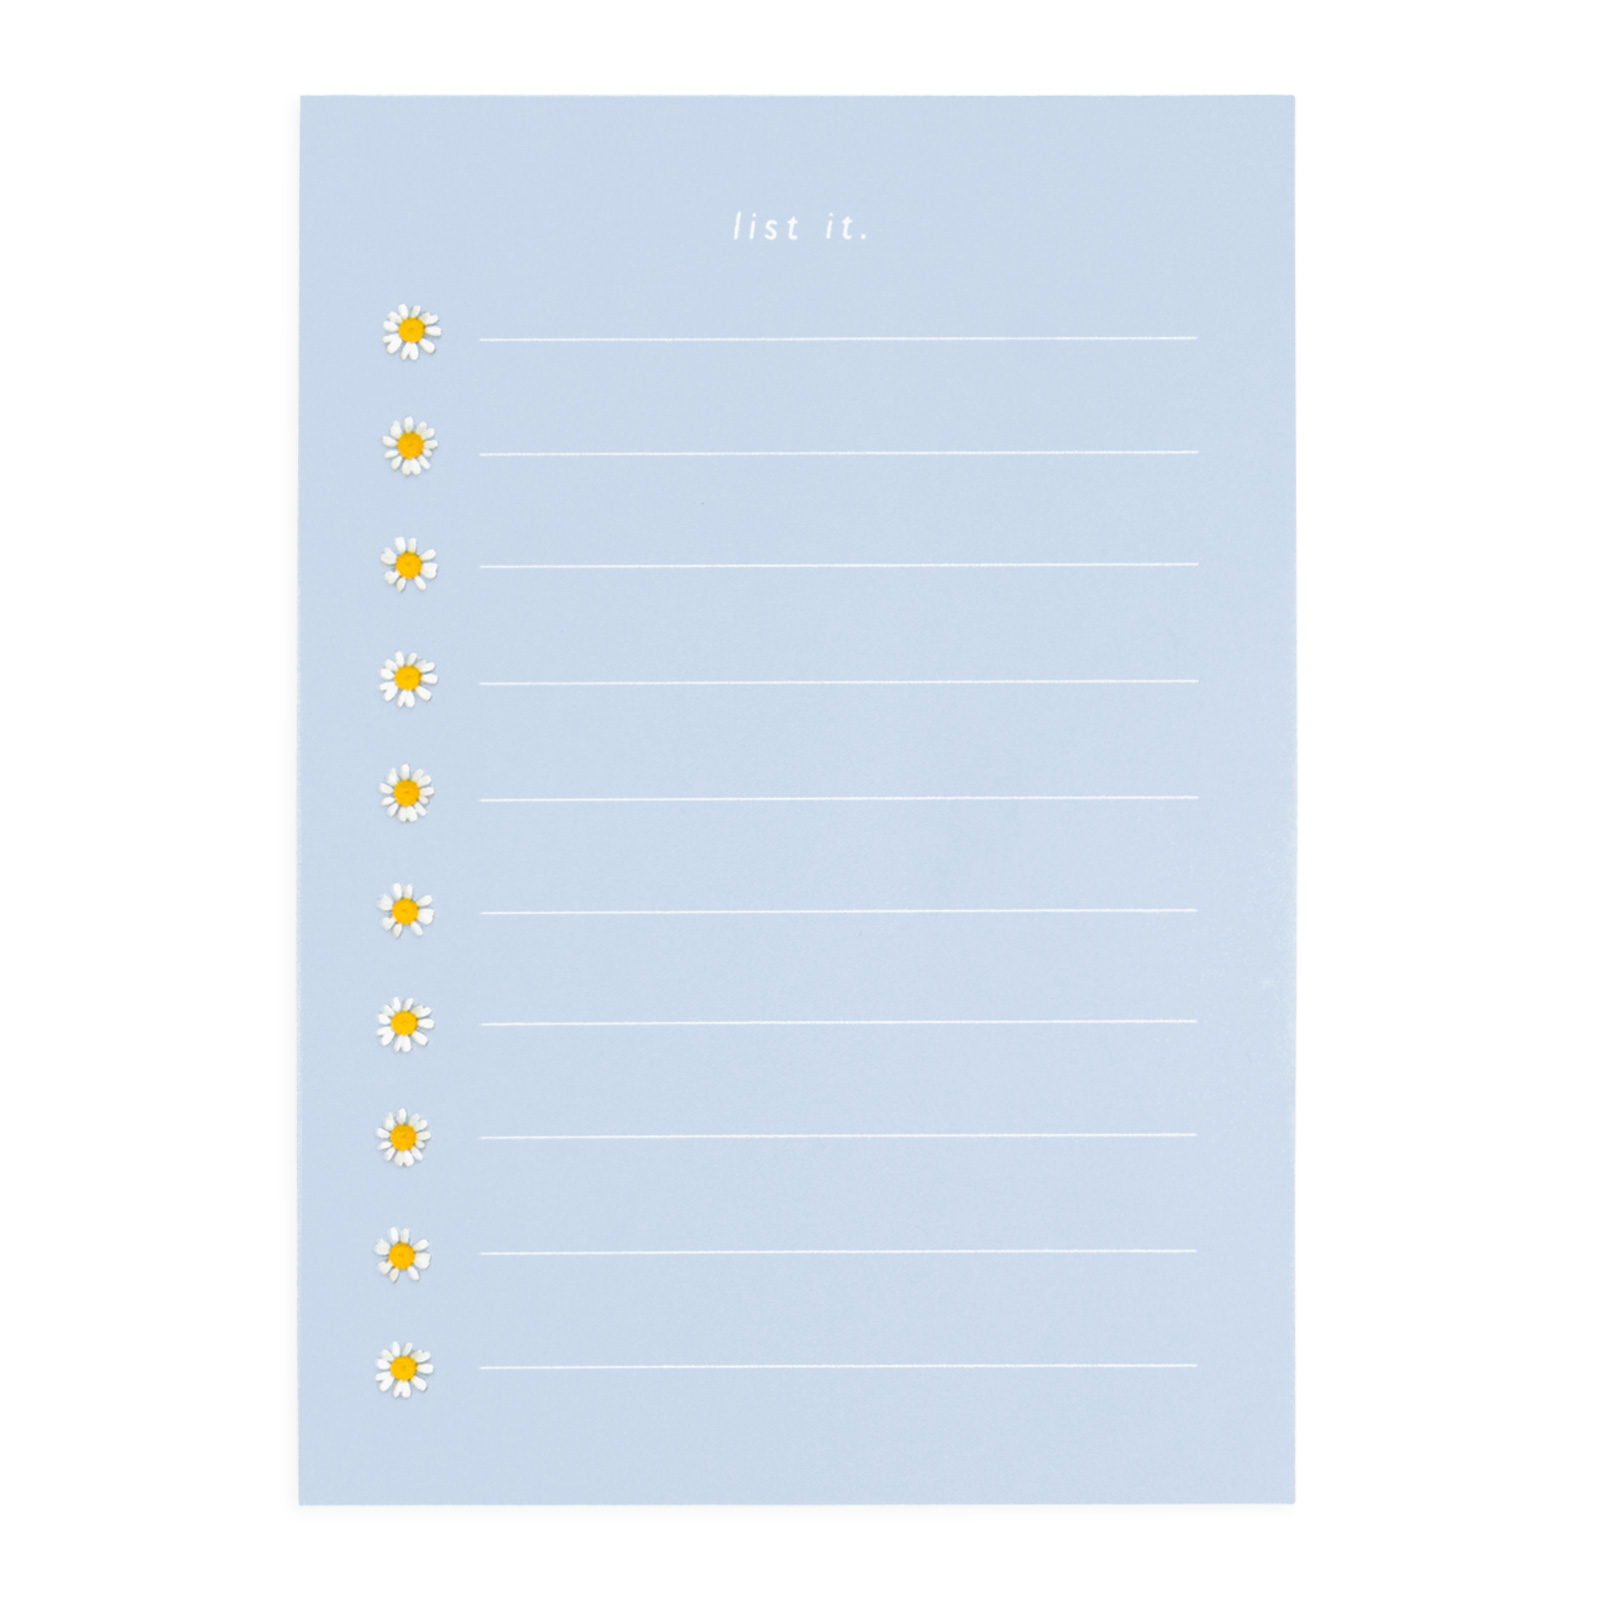 MDG-NP-3415-A6 Floral Primordia A6 Notepad.jpg